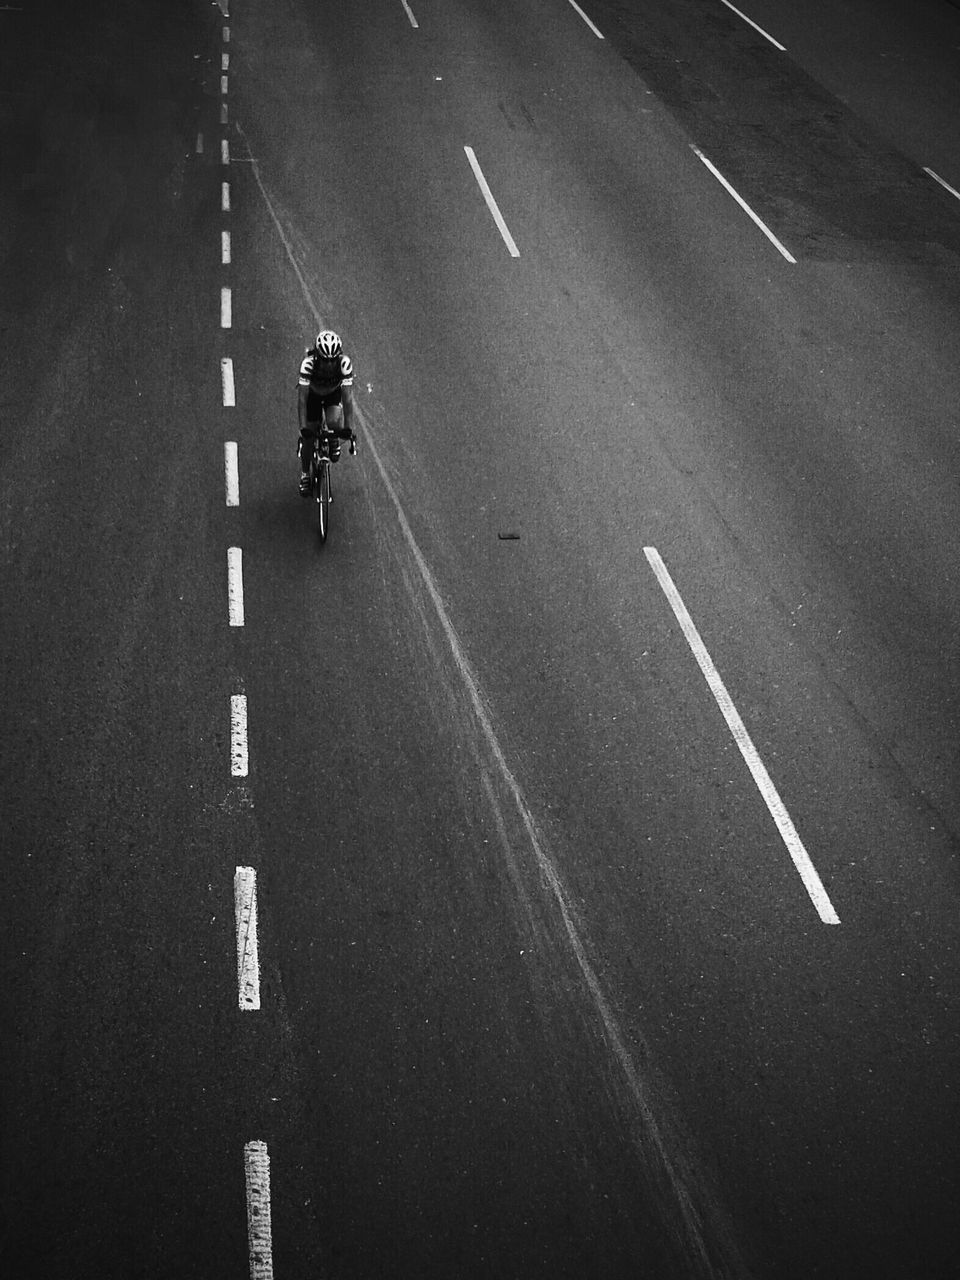 High angle view of person cycling on road